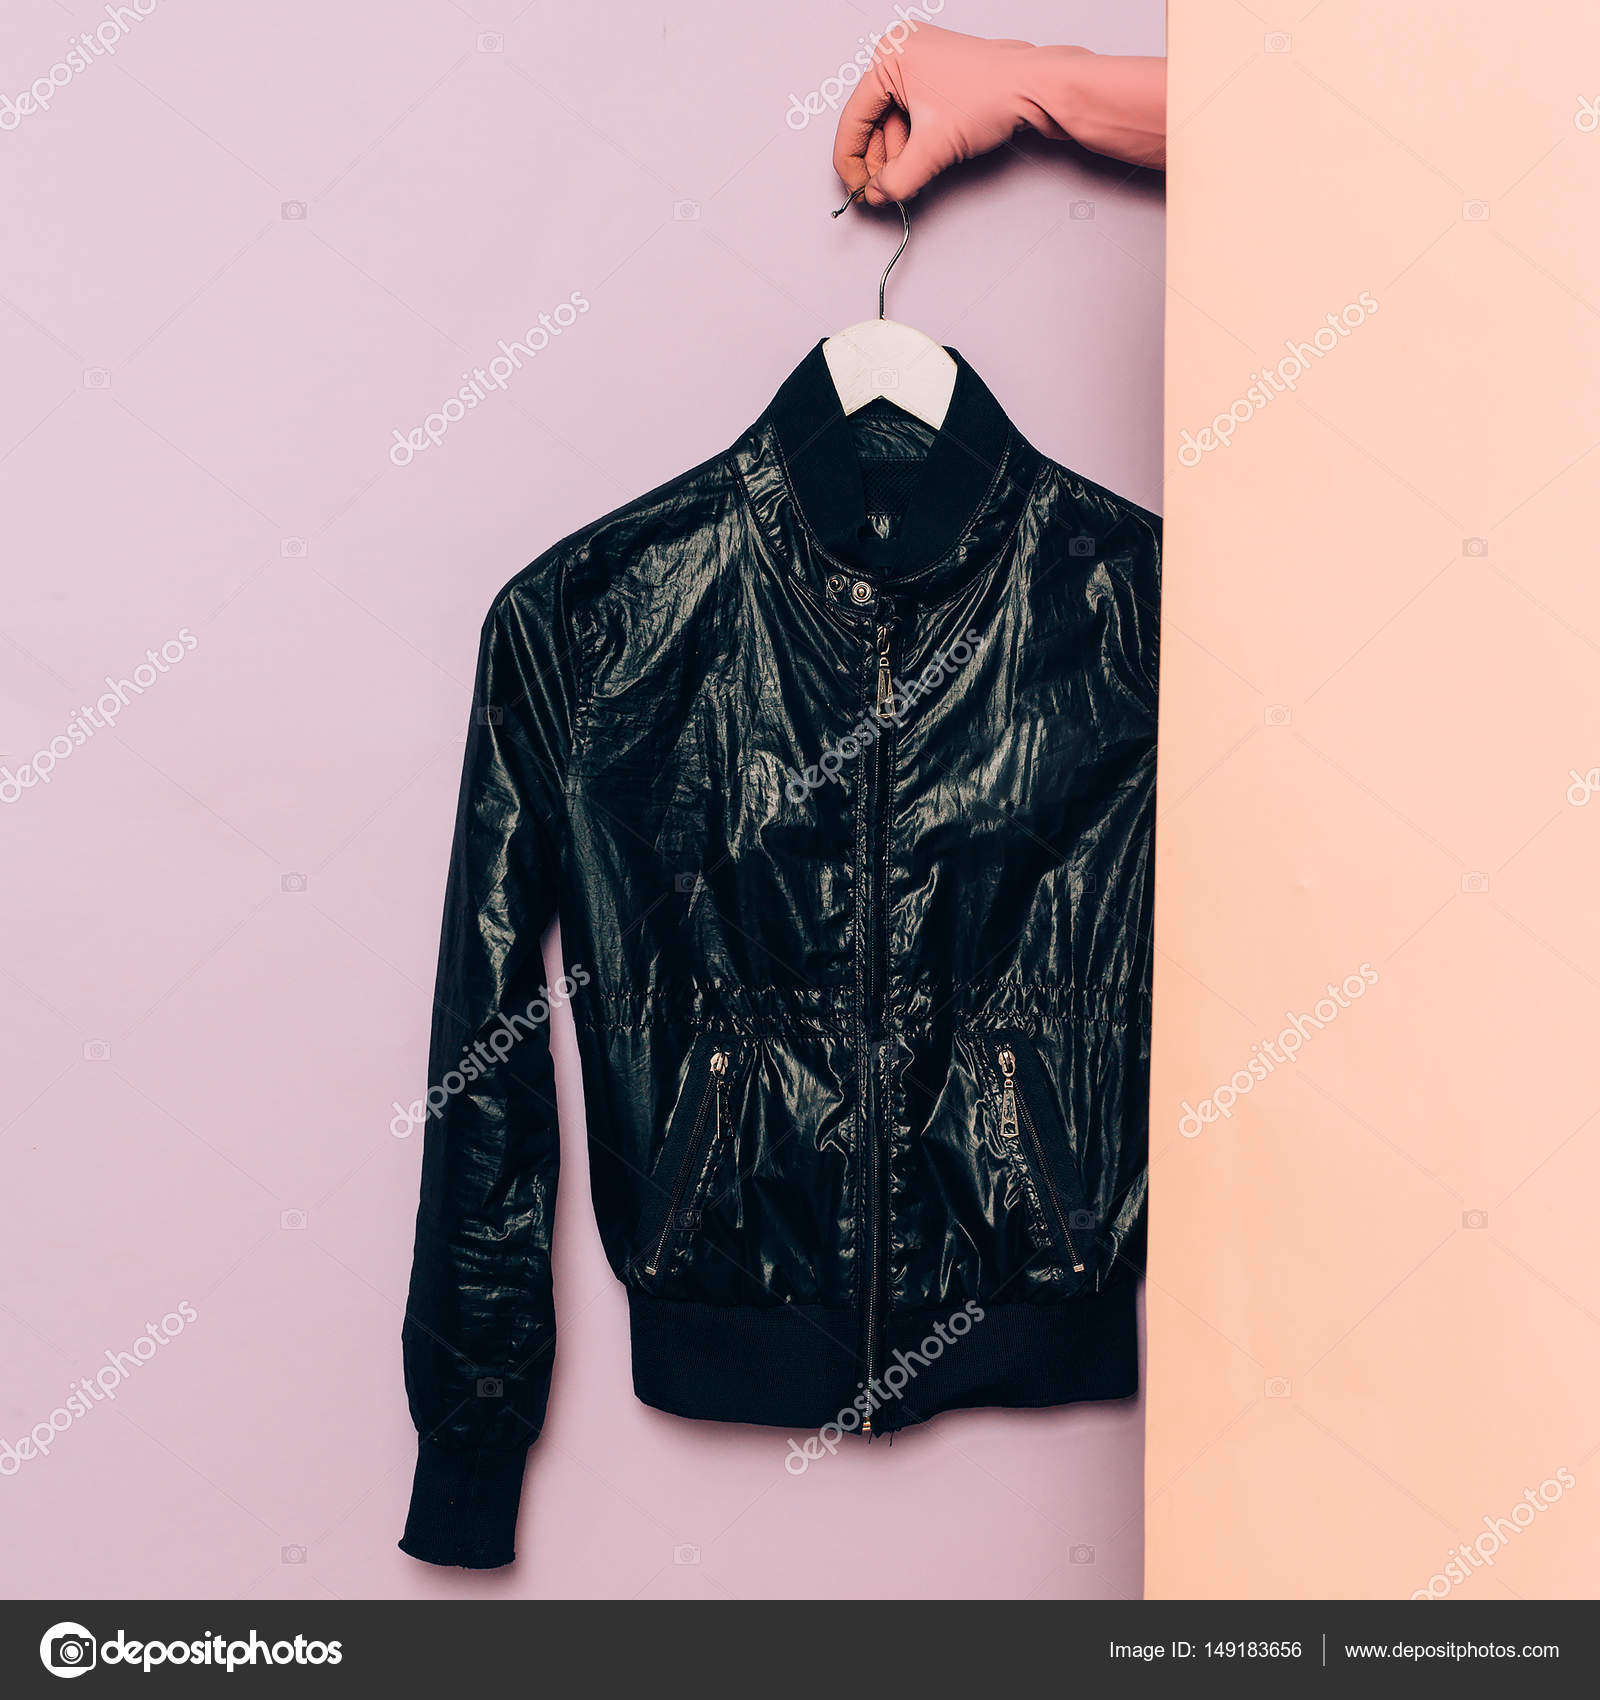 Stylish Clothes Stylish Clothes Spring Season Black Jacket Trend Wardrobe Idea